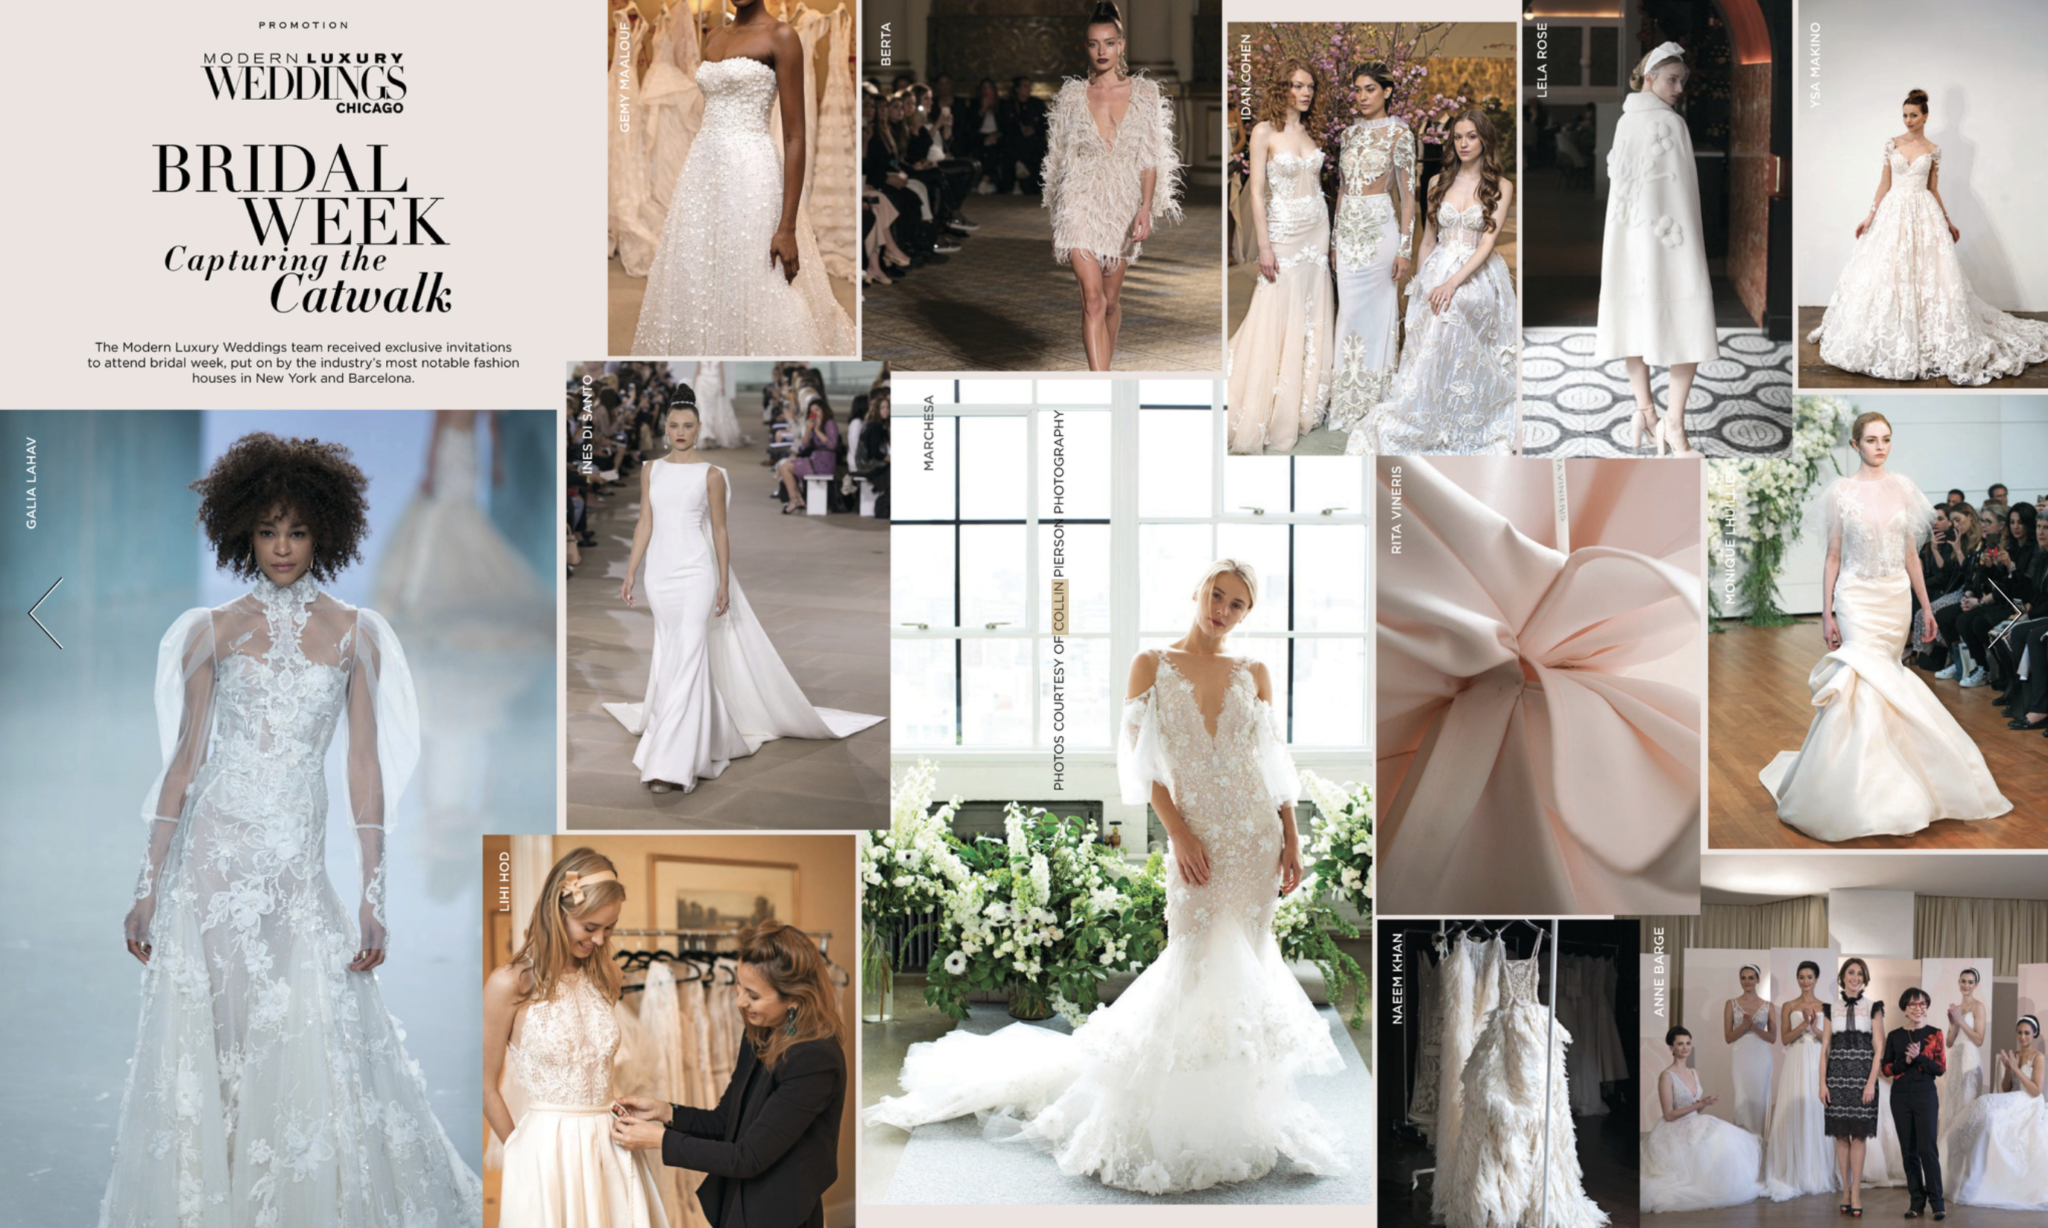 Gearing up for NY Bridal Fashion Week – Spring 17 featured in Modern Luxury Weddings